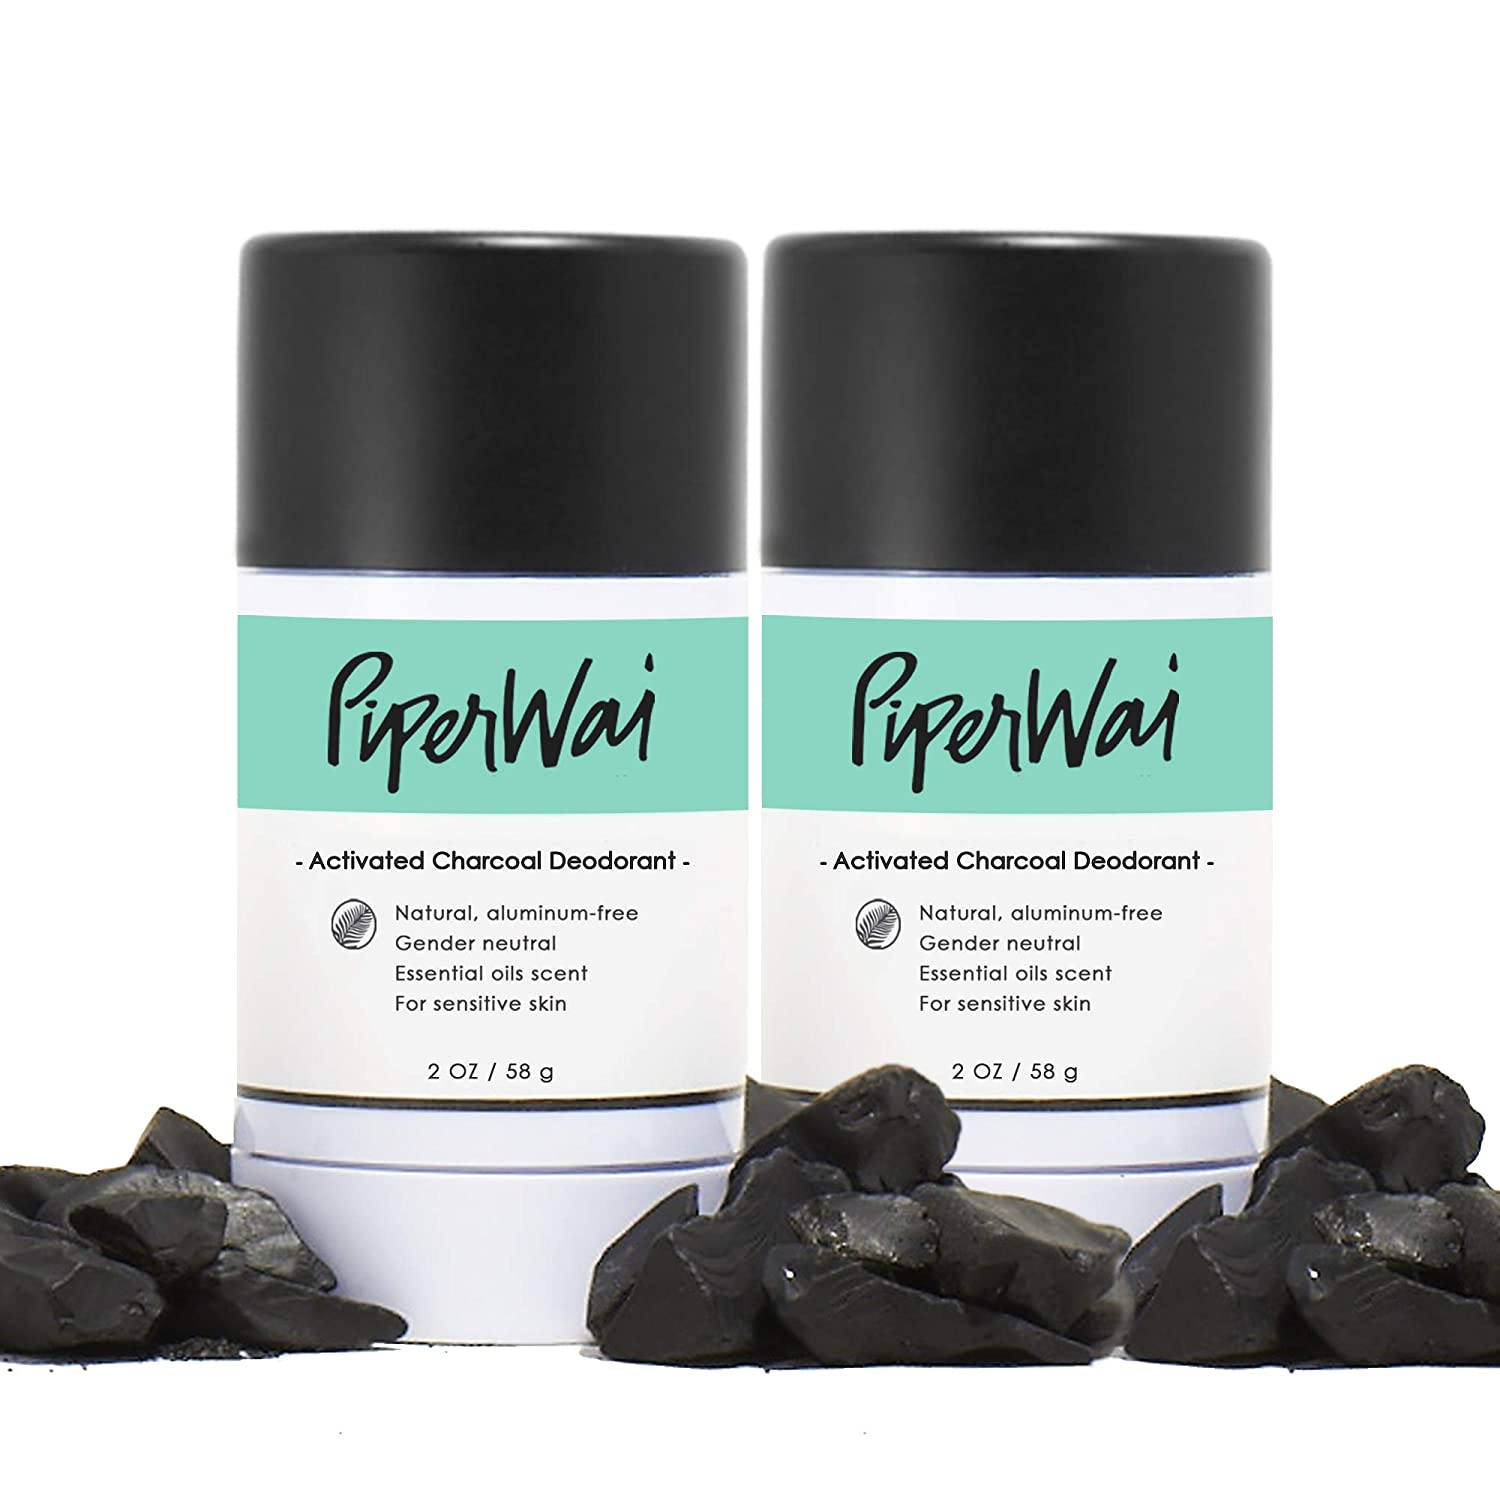 PiperWai, Natural Activated Charcoal Deodorant, Organic, Aluminum-Free, Odor-Absorbing and Wetness Fighting, Coconut Oil, Gender-Neutral (As Seen on Shark Tank) (2 Pack Stick (2.7 oz))